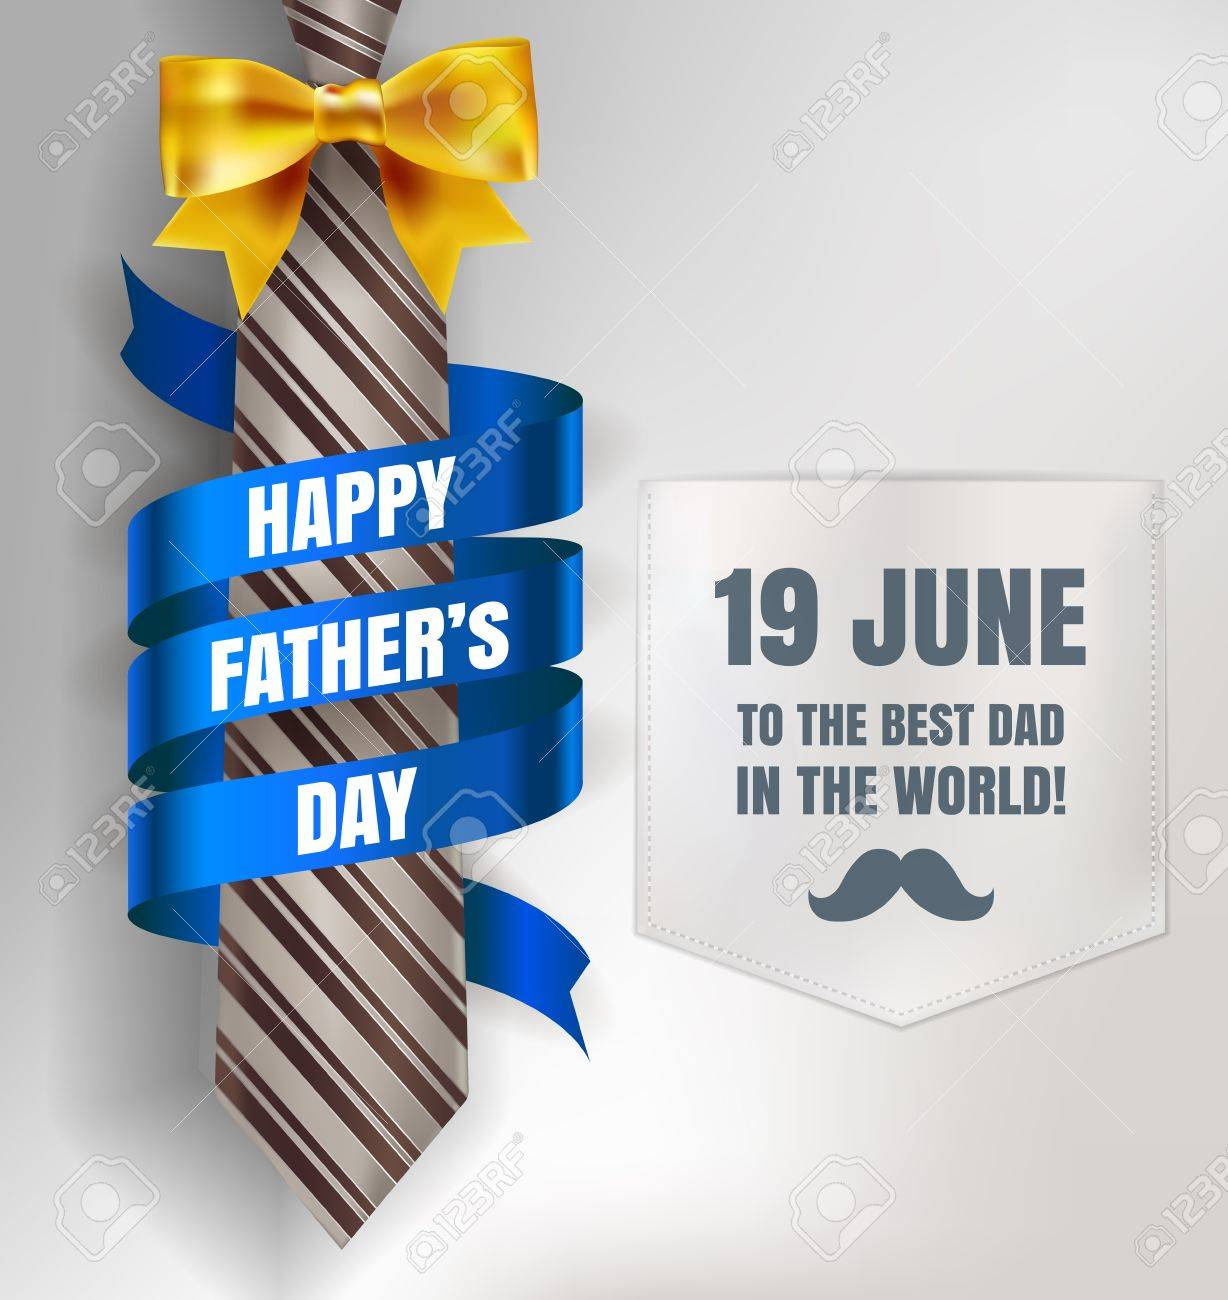 Happy Father's Day Background Template With Man Brown Tie And ...